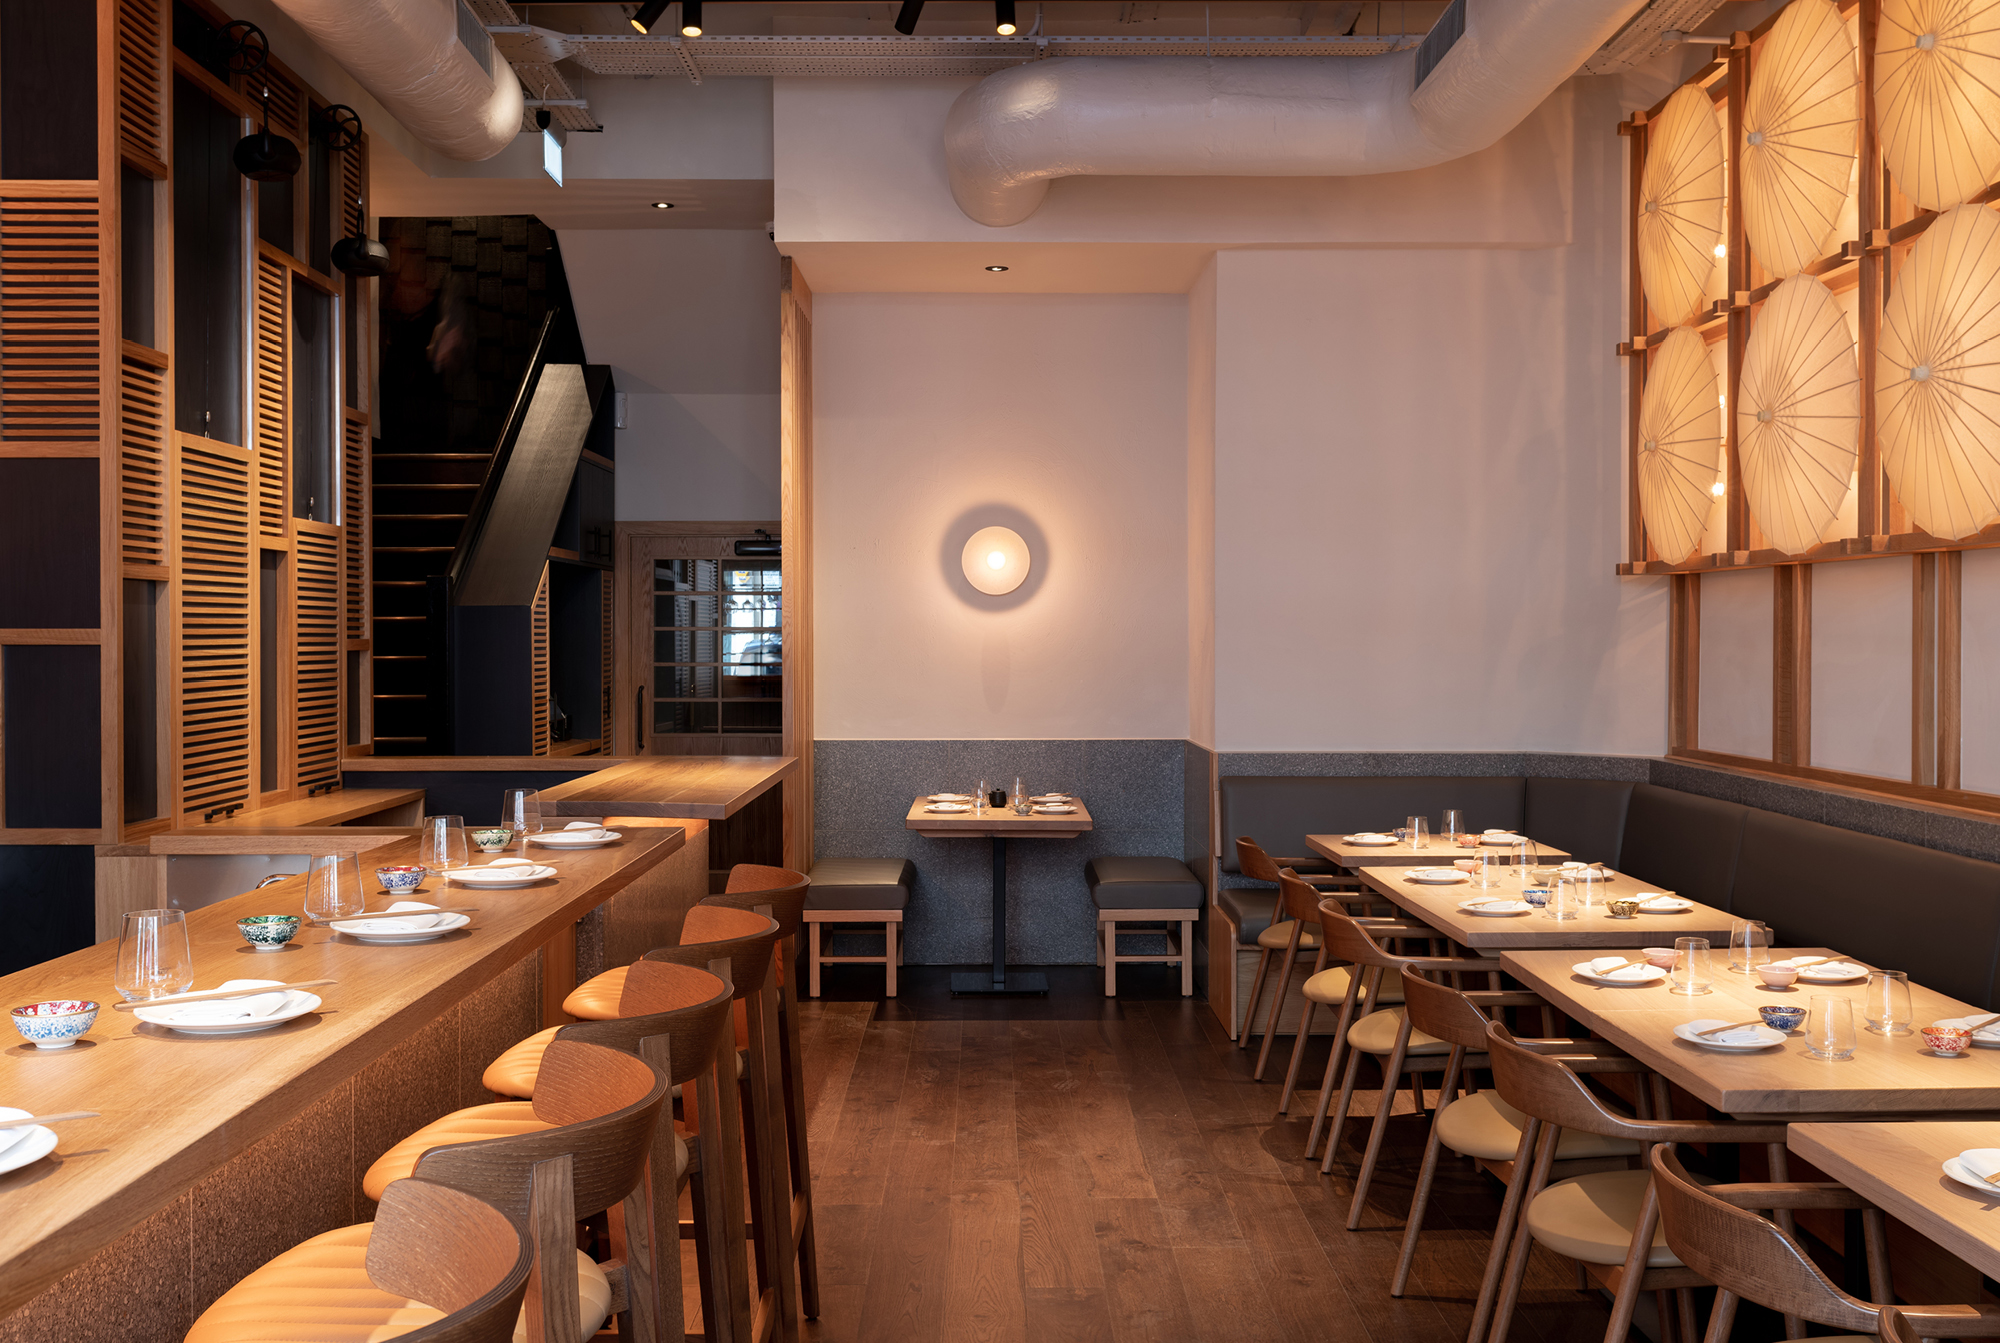 Taka Marylebone has finally opened its doors after a four-month Covid-related delay